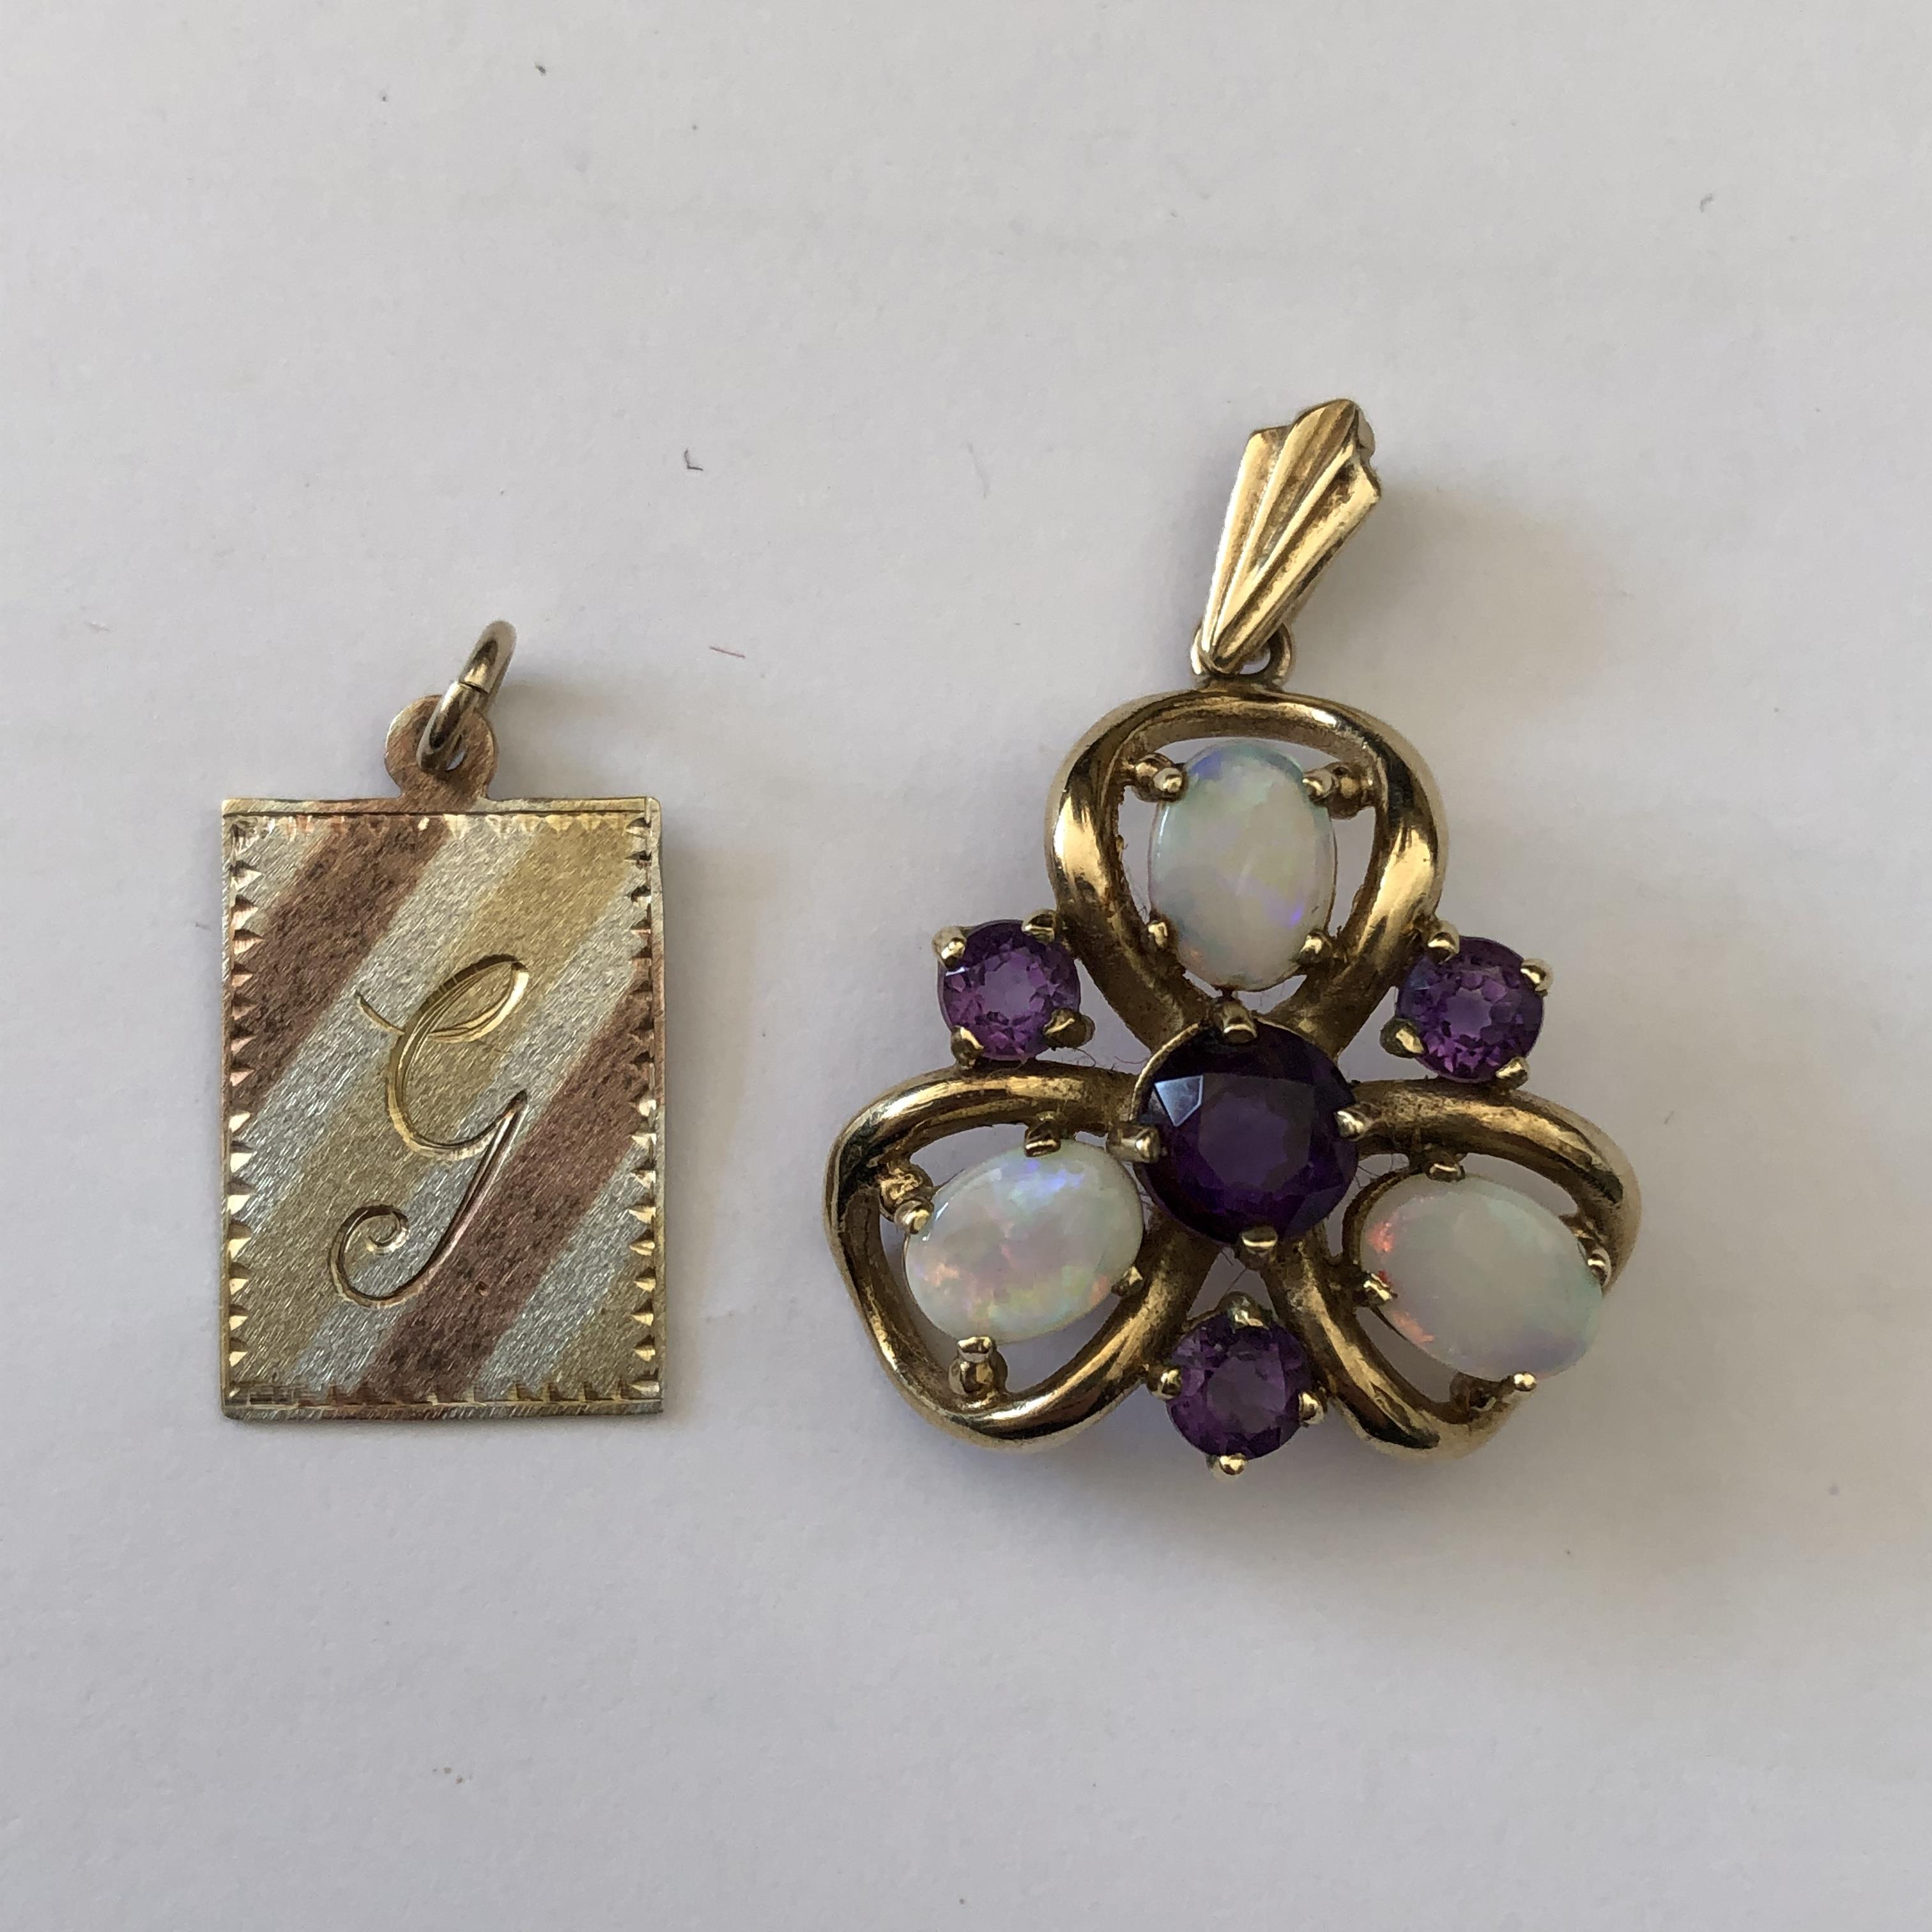 Lot 208 - 9CT GOLD AMETHYST AND OPAL TREFOIL PENDANT AND A 9CT TRI COLOUR GOLD OBLONG PENDANT ENGRAVED WITH G